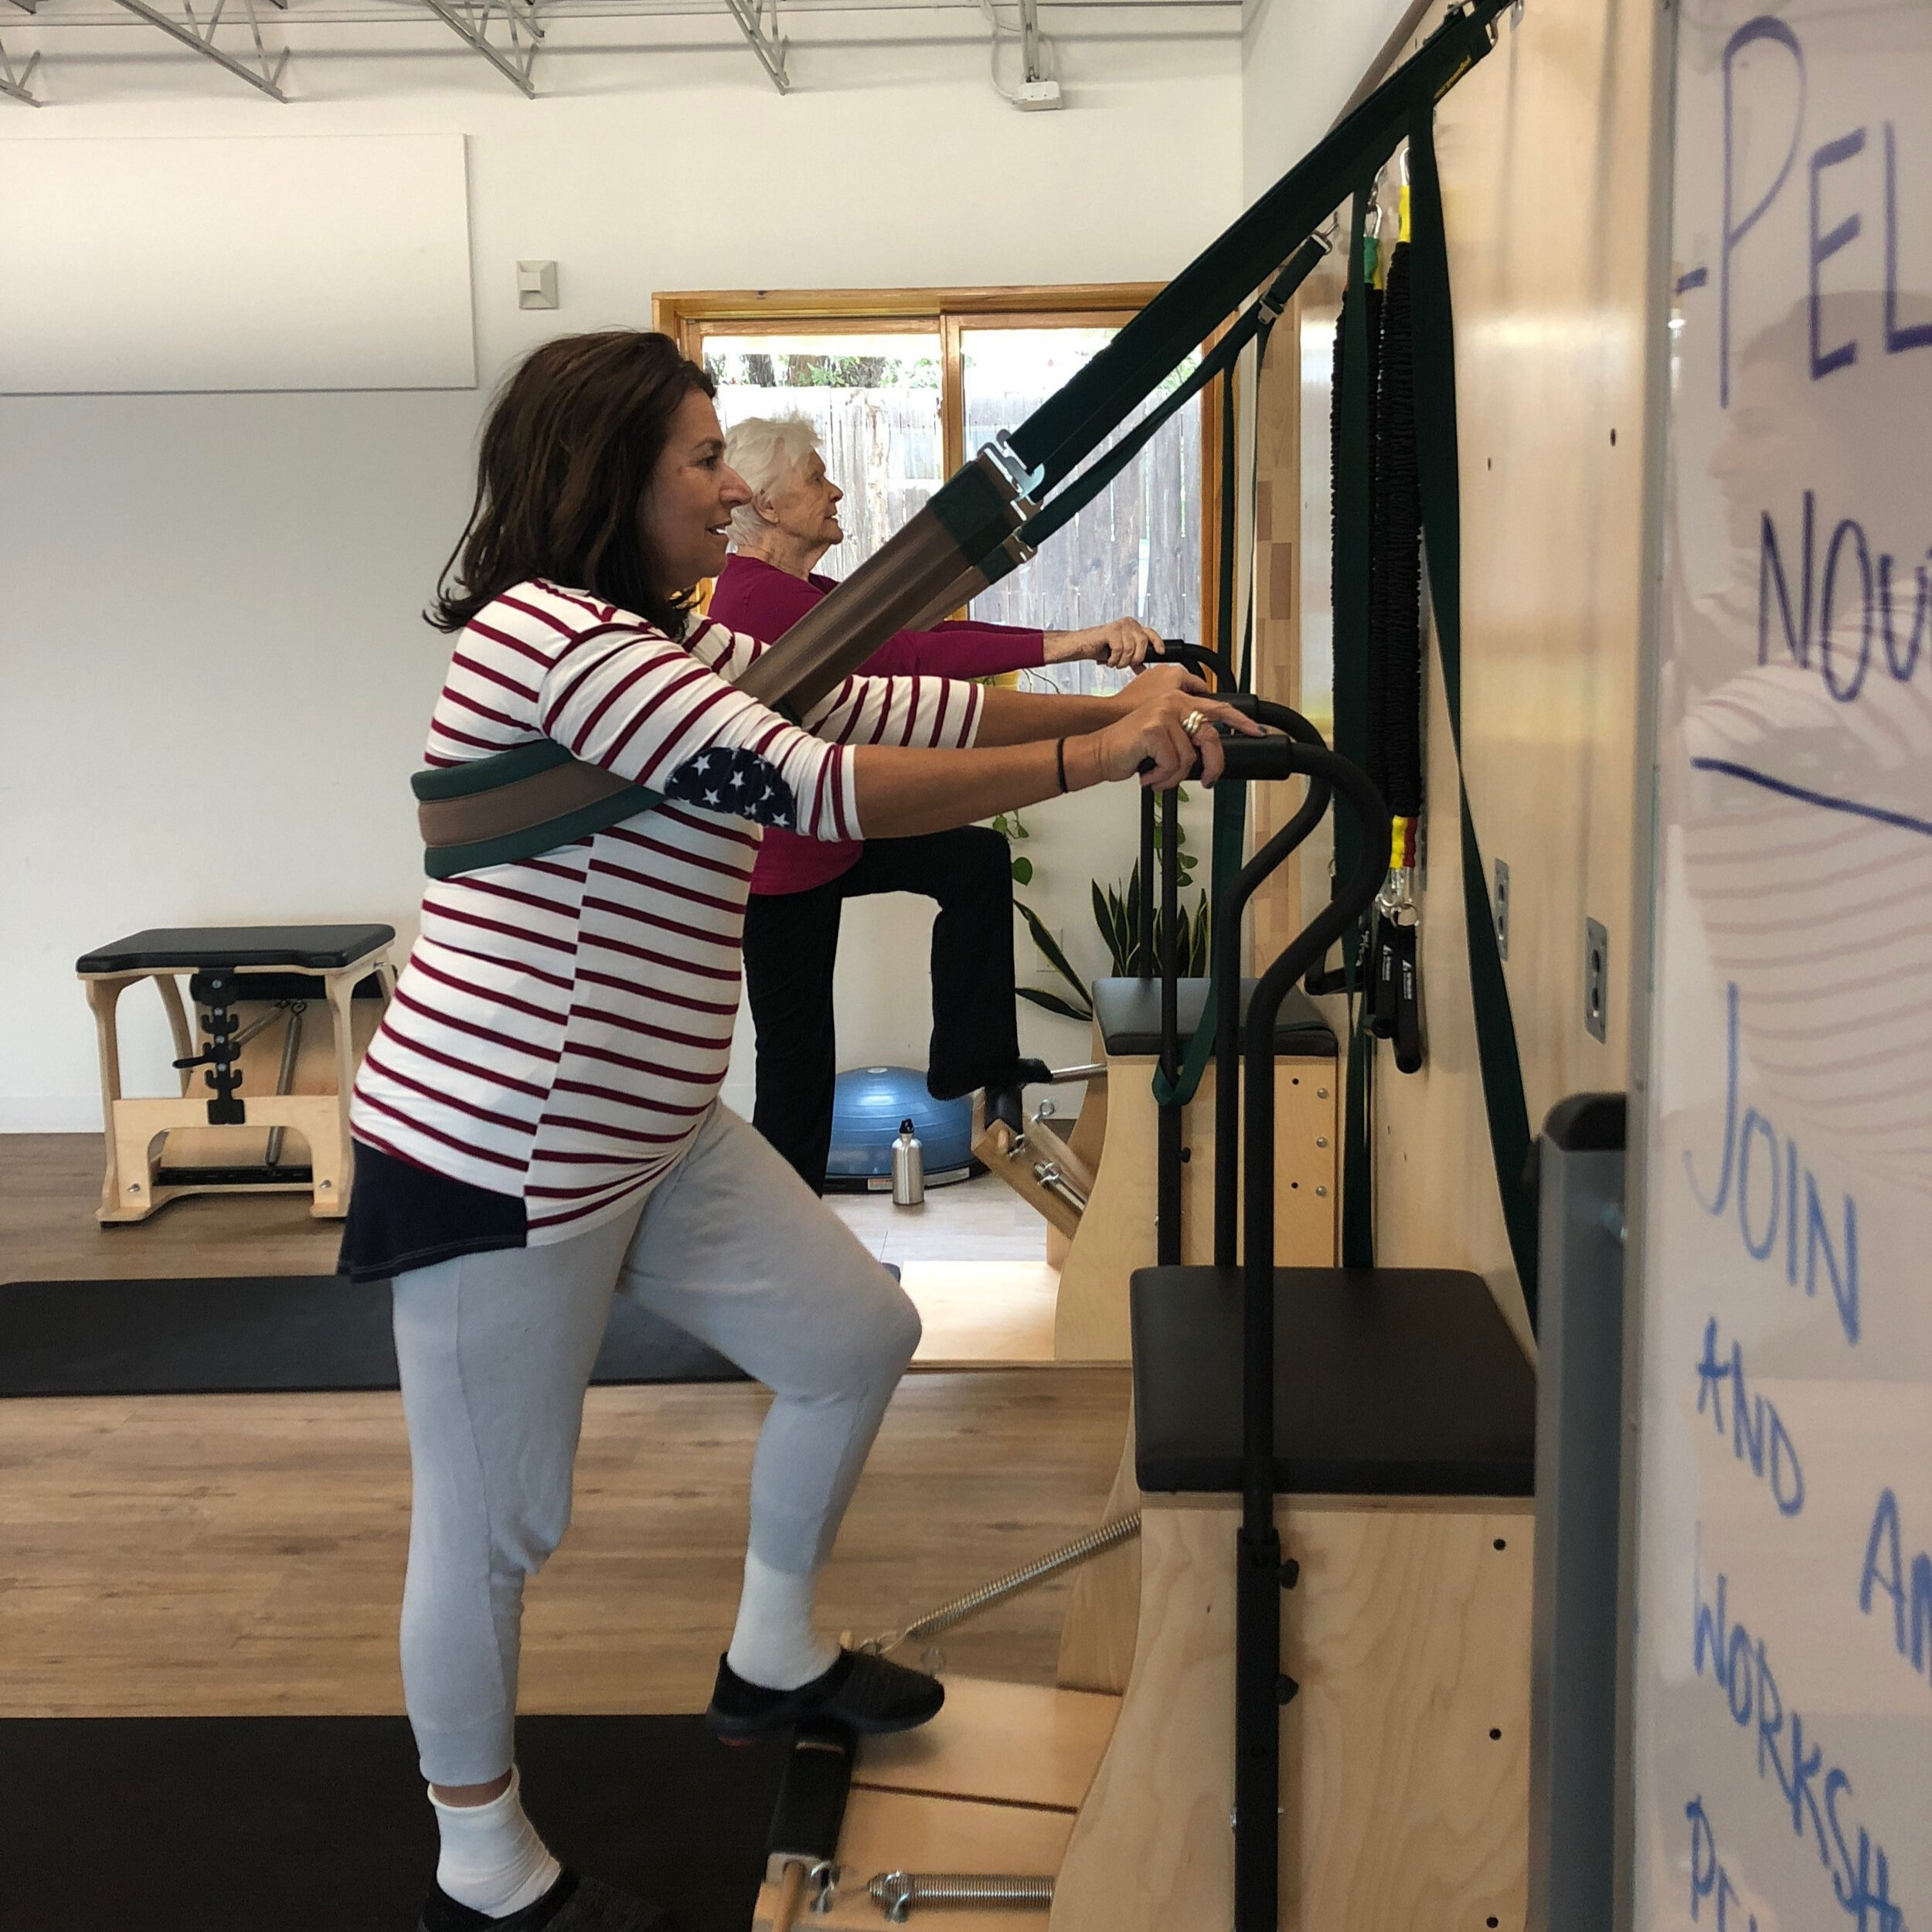 Pilates+for+MS+class+at+The+Pilates+Collective.jpg